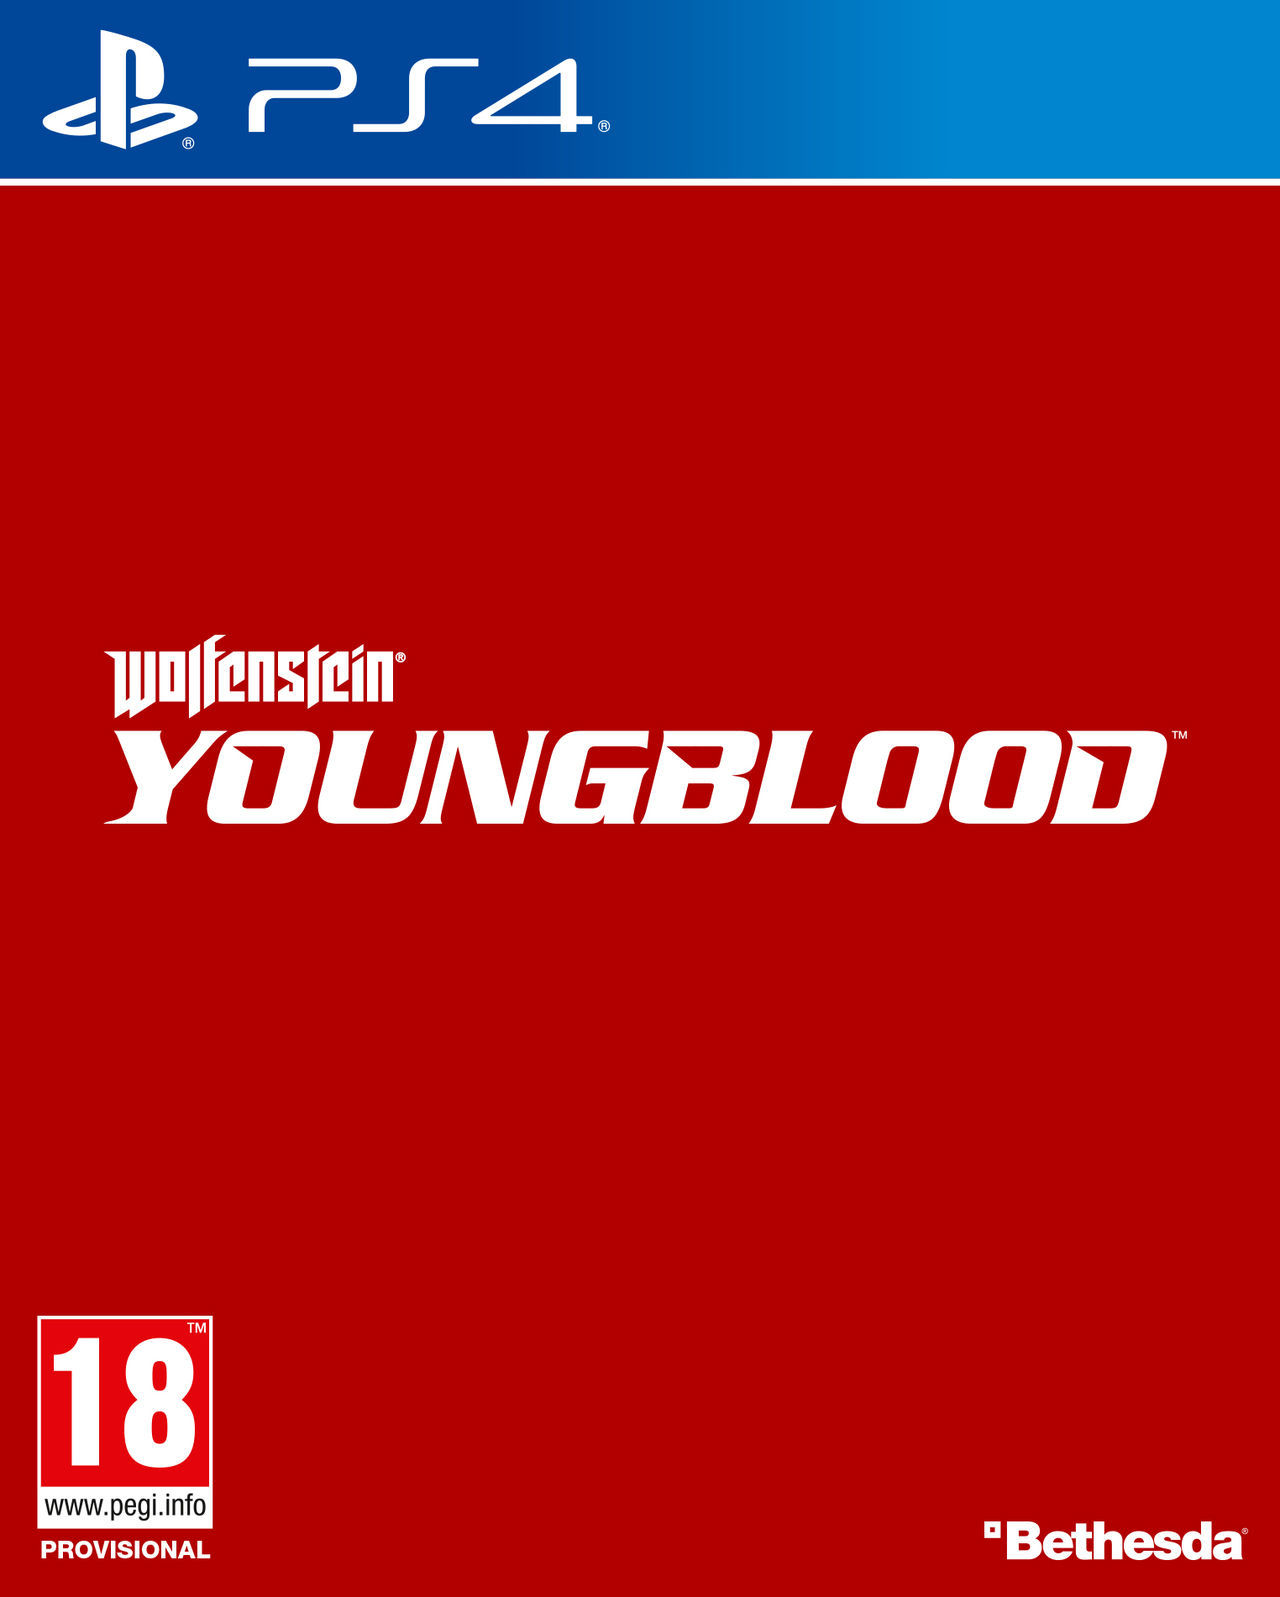 Imagen 1 de Wolfenstein Youngblood para PlayStation 4